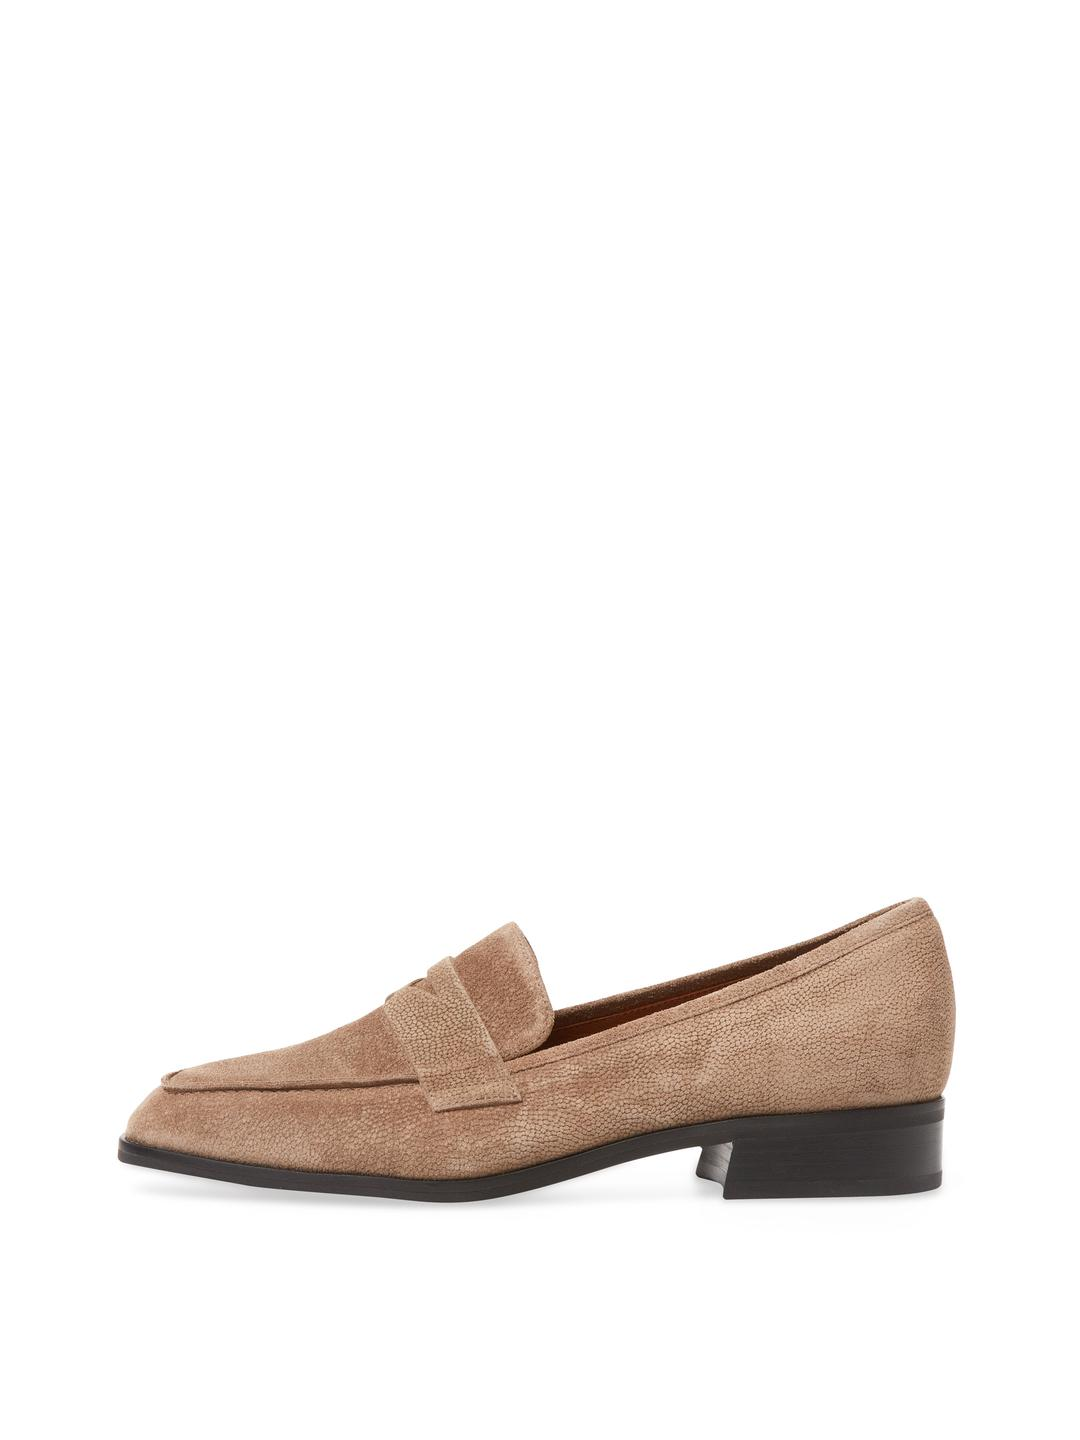 c3c046b816e Lyst - Aquatalia Sharon Suede Penny Loafer in Brown